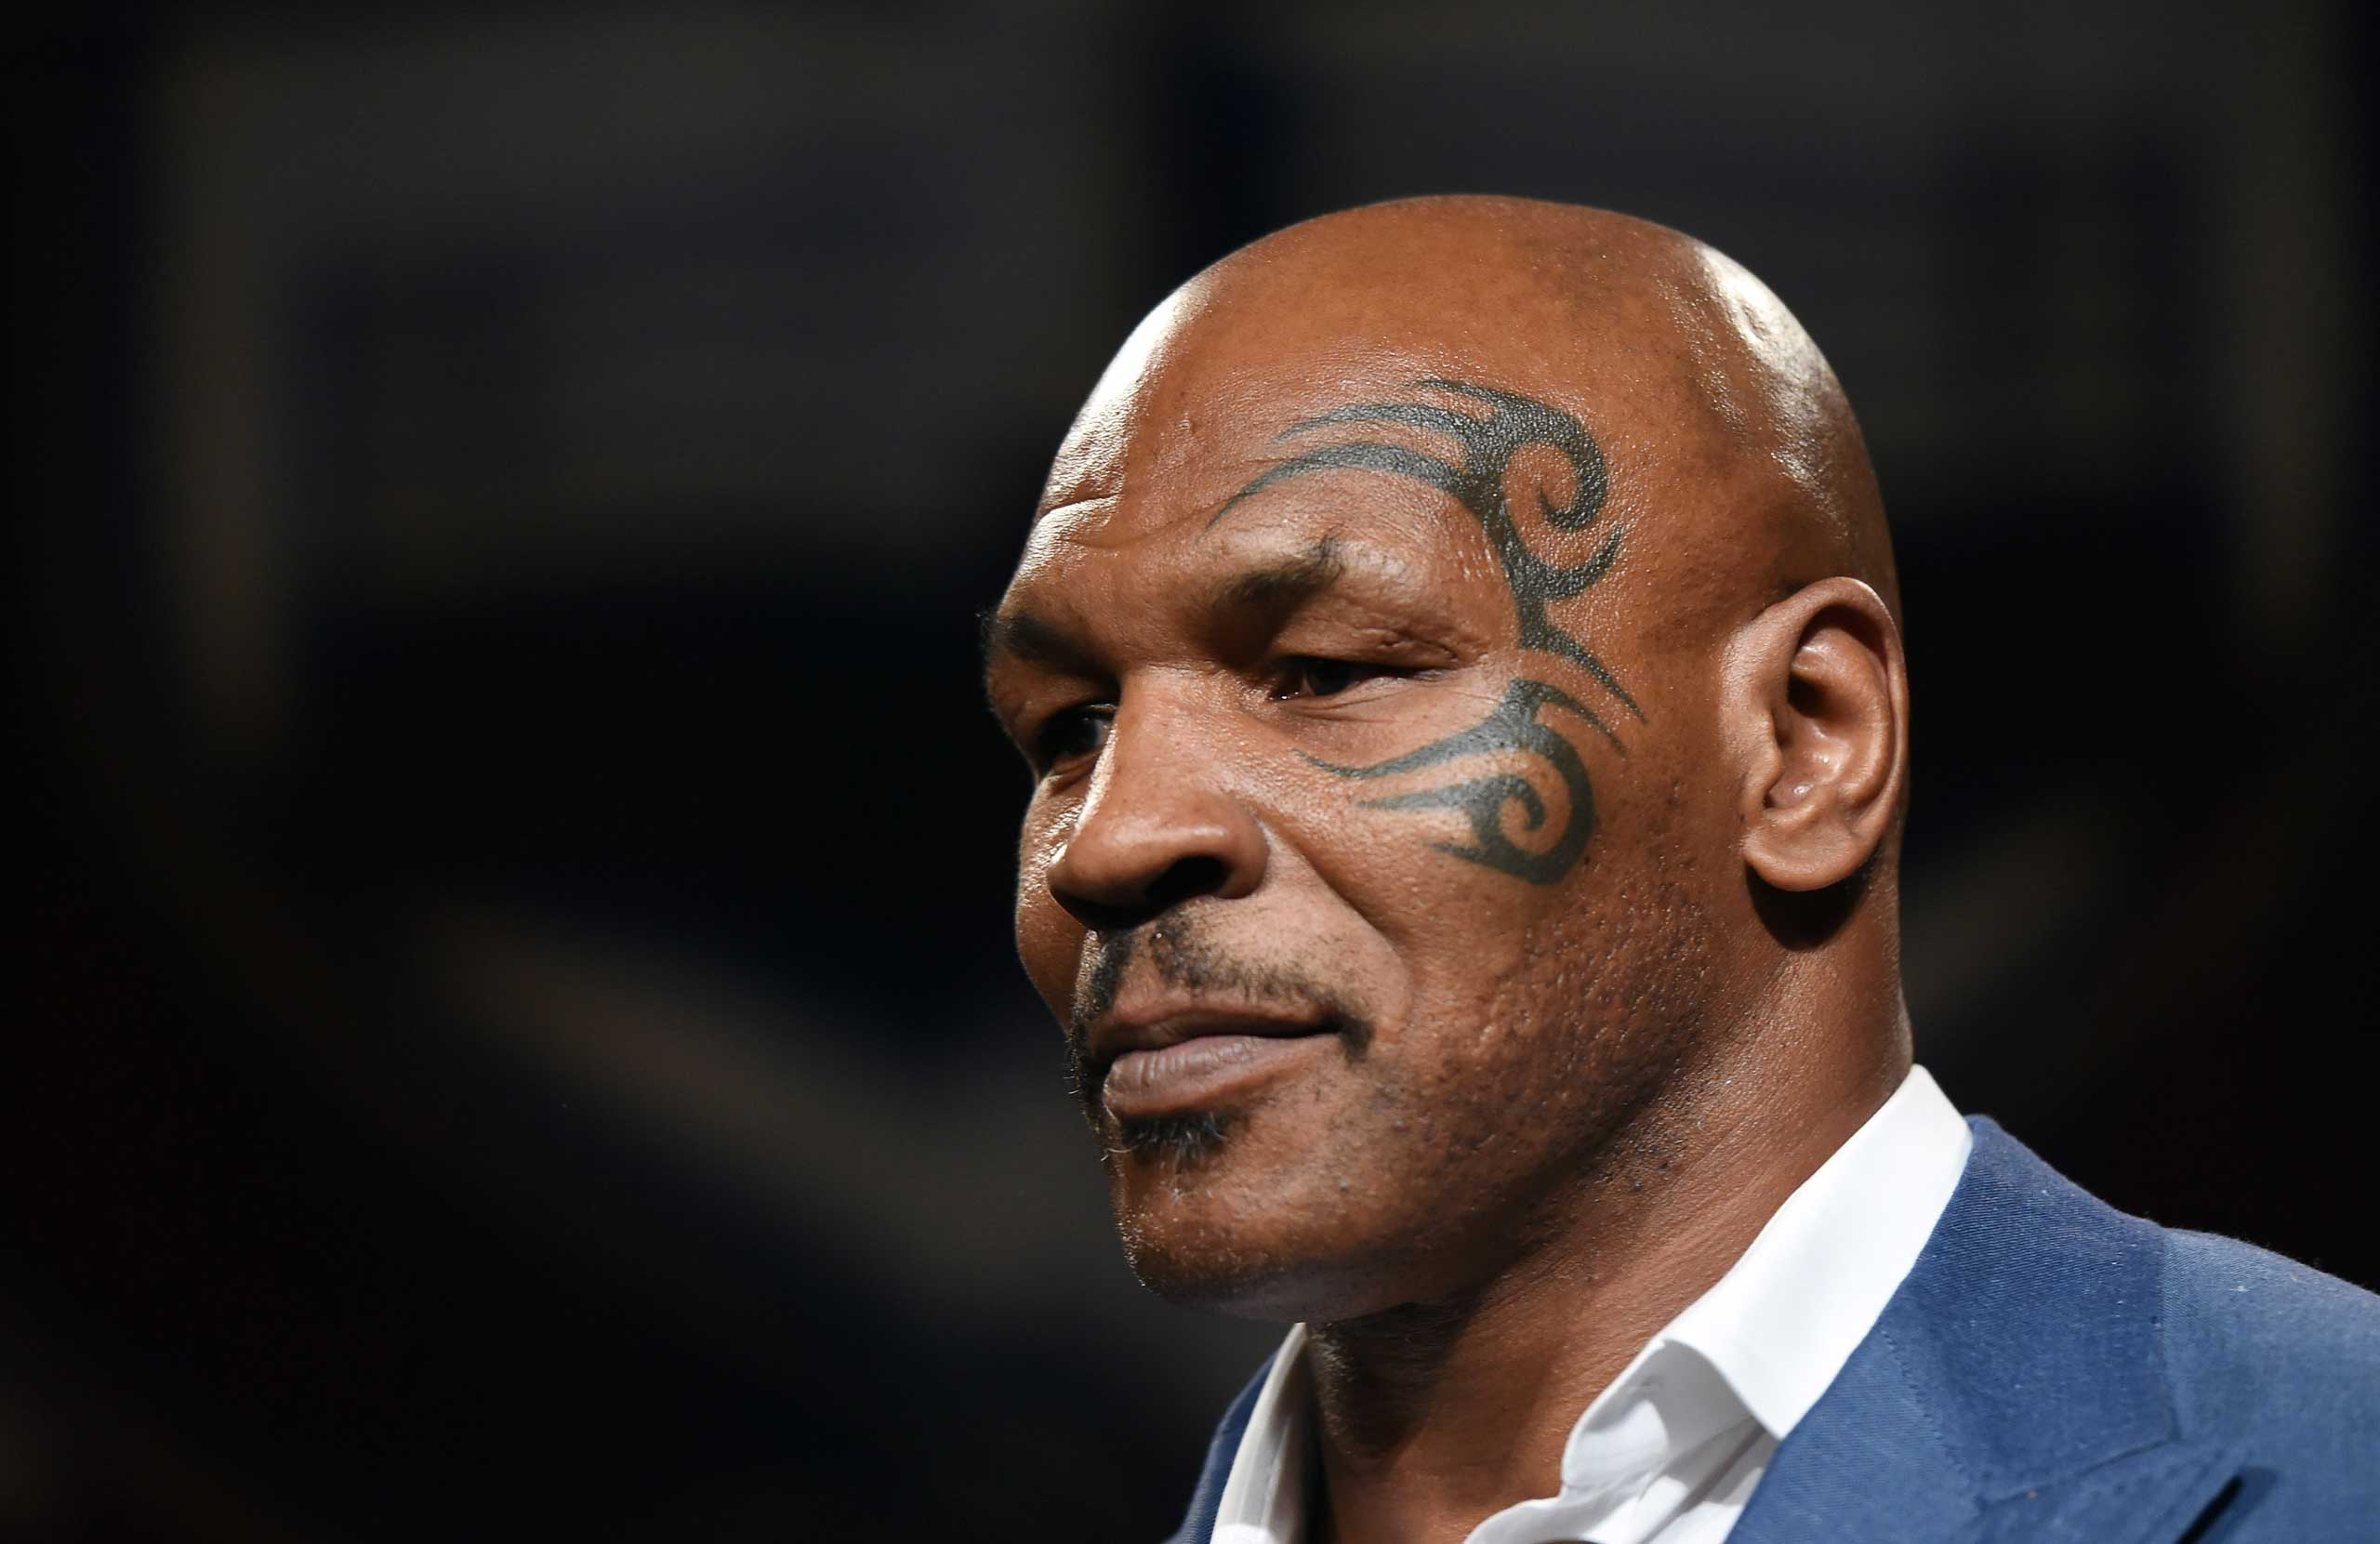 Mike Tyson at the Nevada Boxing Hall of Fame, Aug. 9, 2014 in Las Vegas.